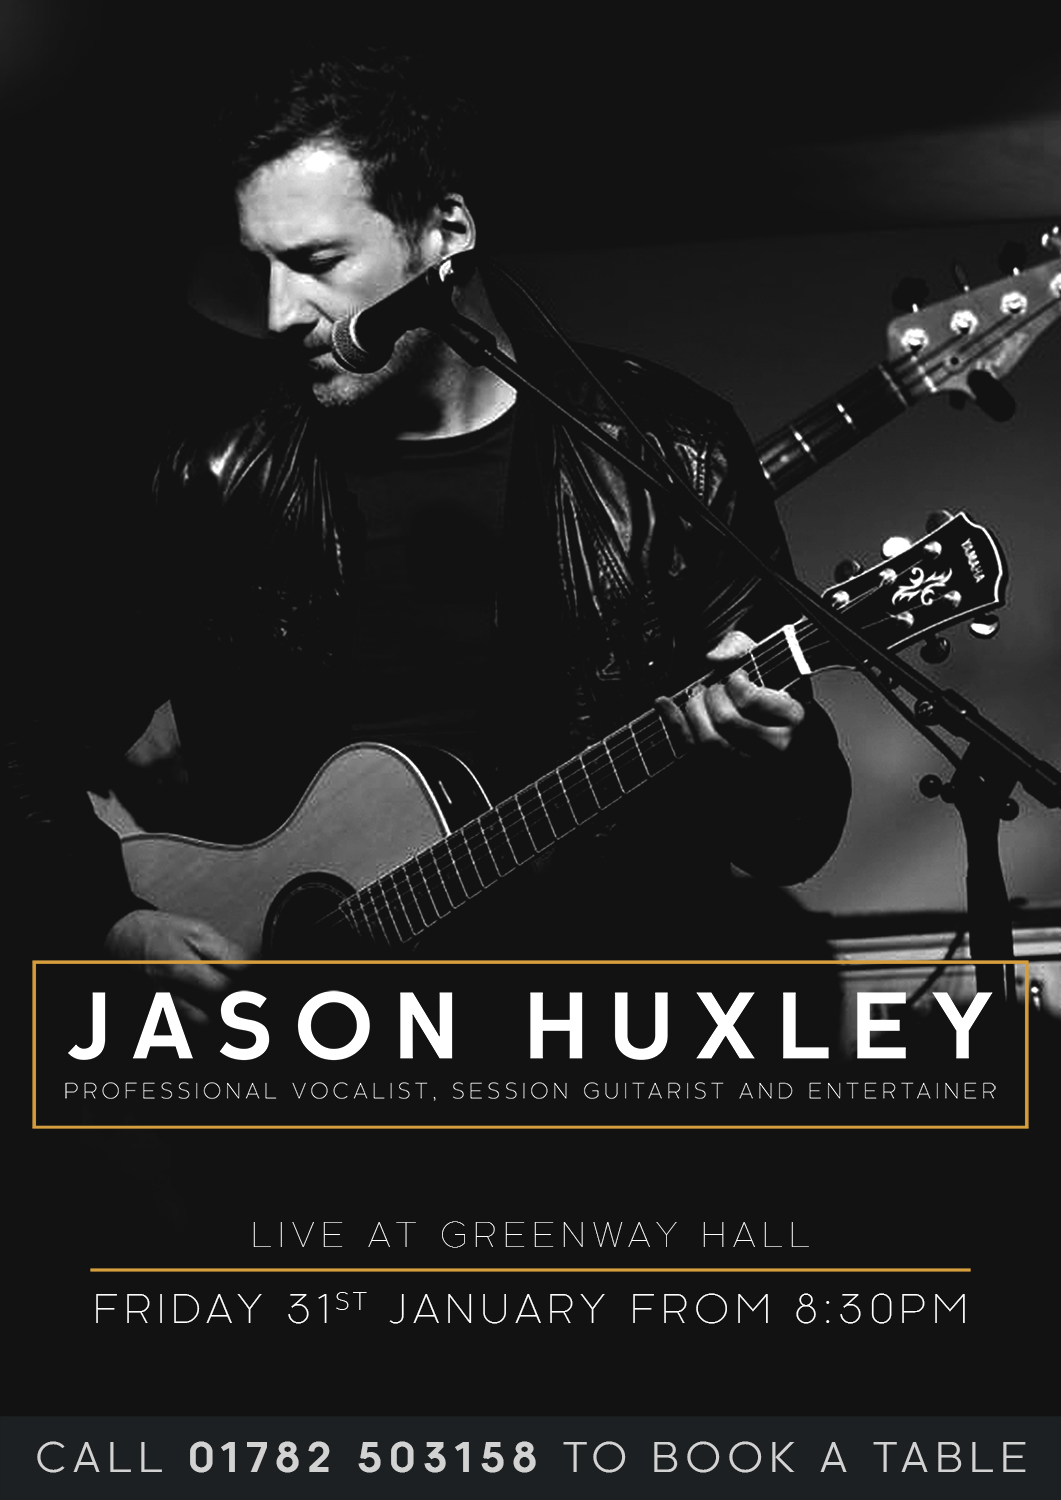 Come and see Jason Huxley perform live at Greenway Hall on Friday 31st January 2020